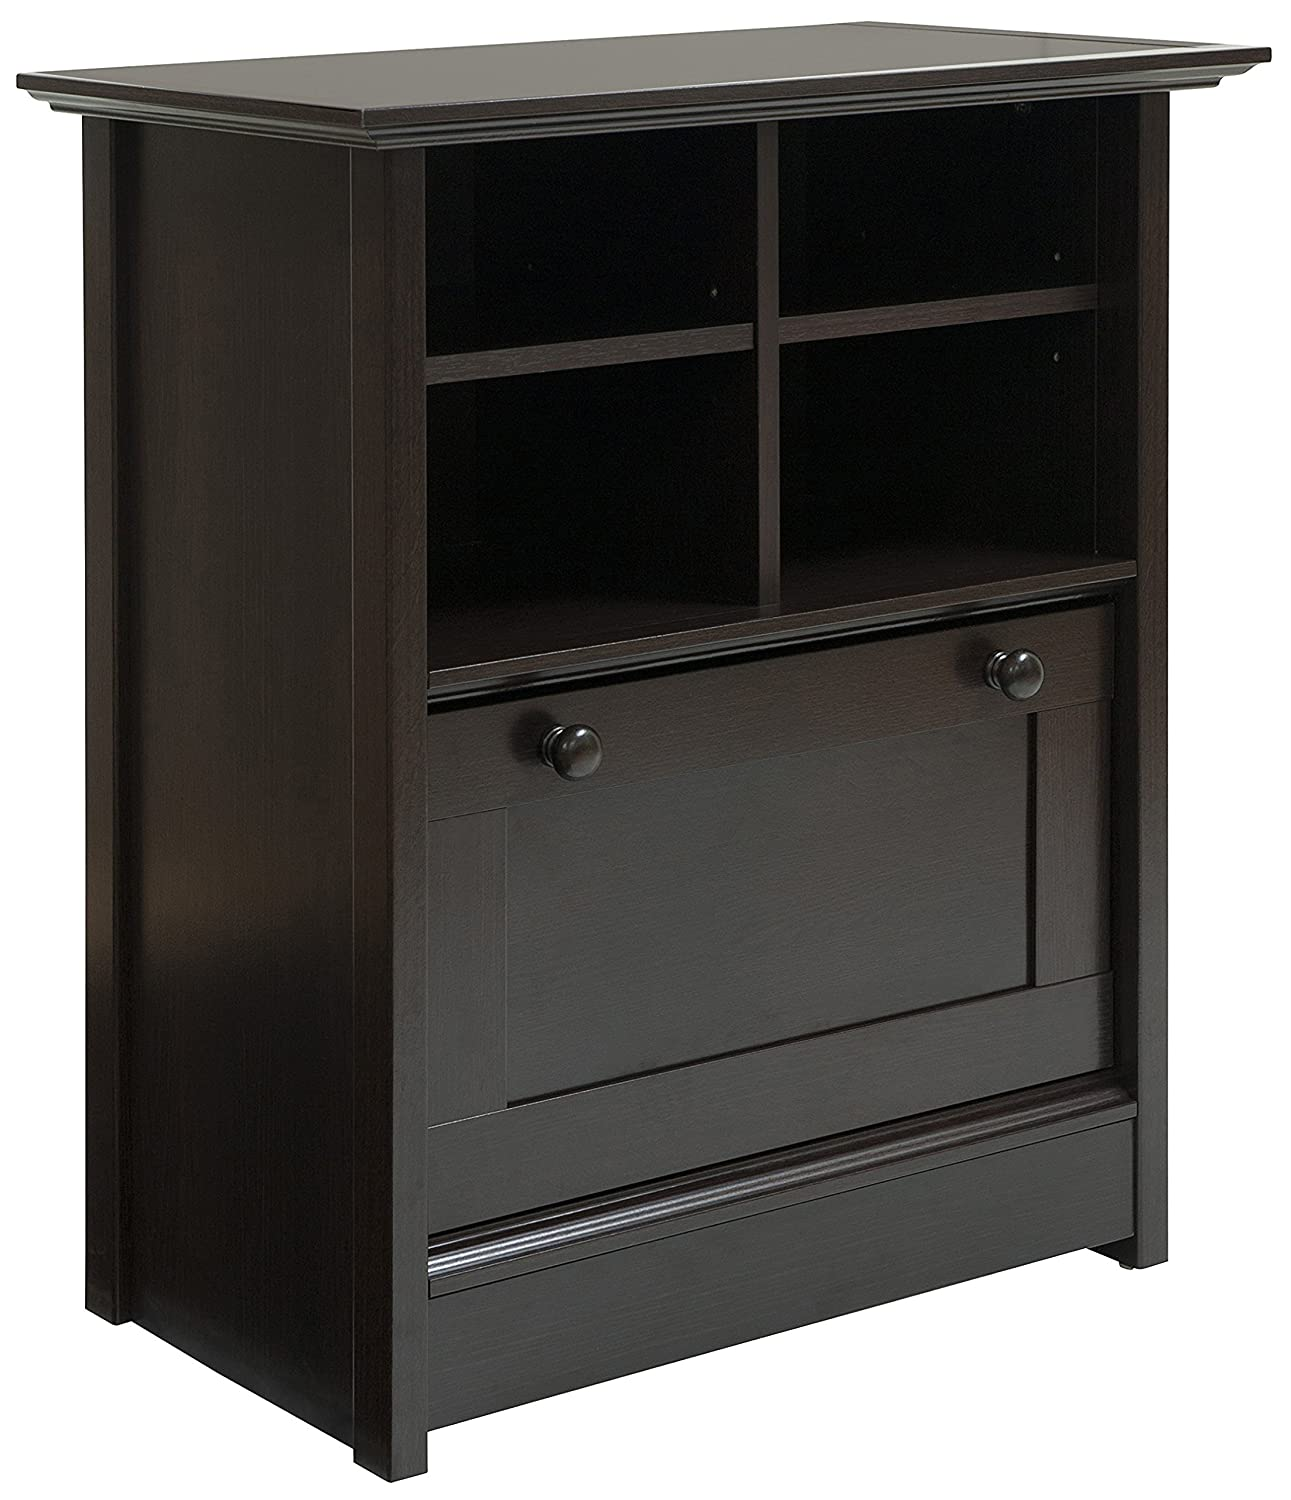 out nightstand world top drawer white filing oak creativity cabinets cabinet discount of lateral foolscap file this